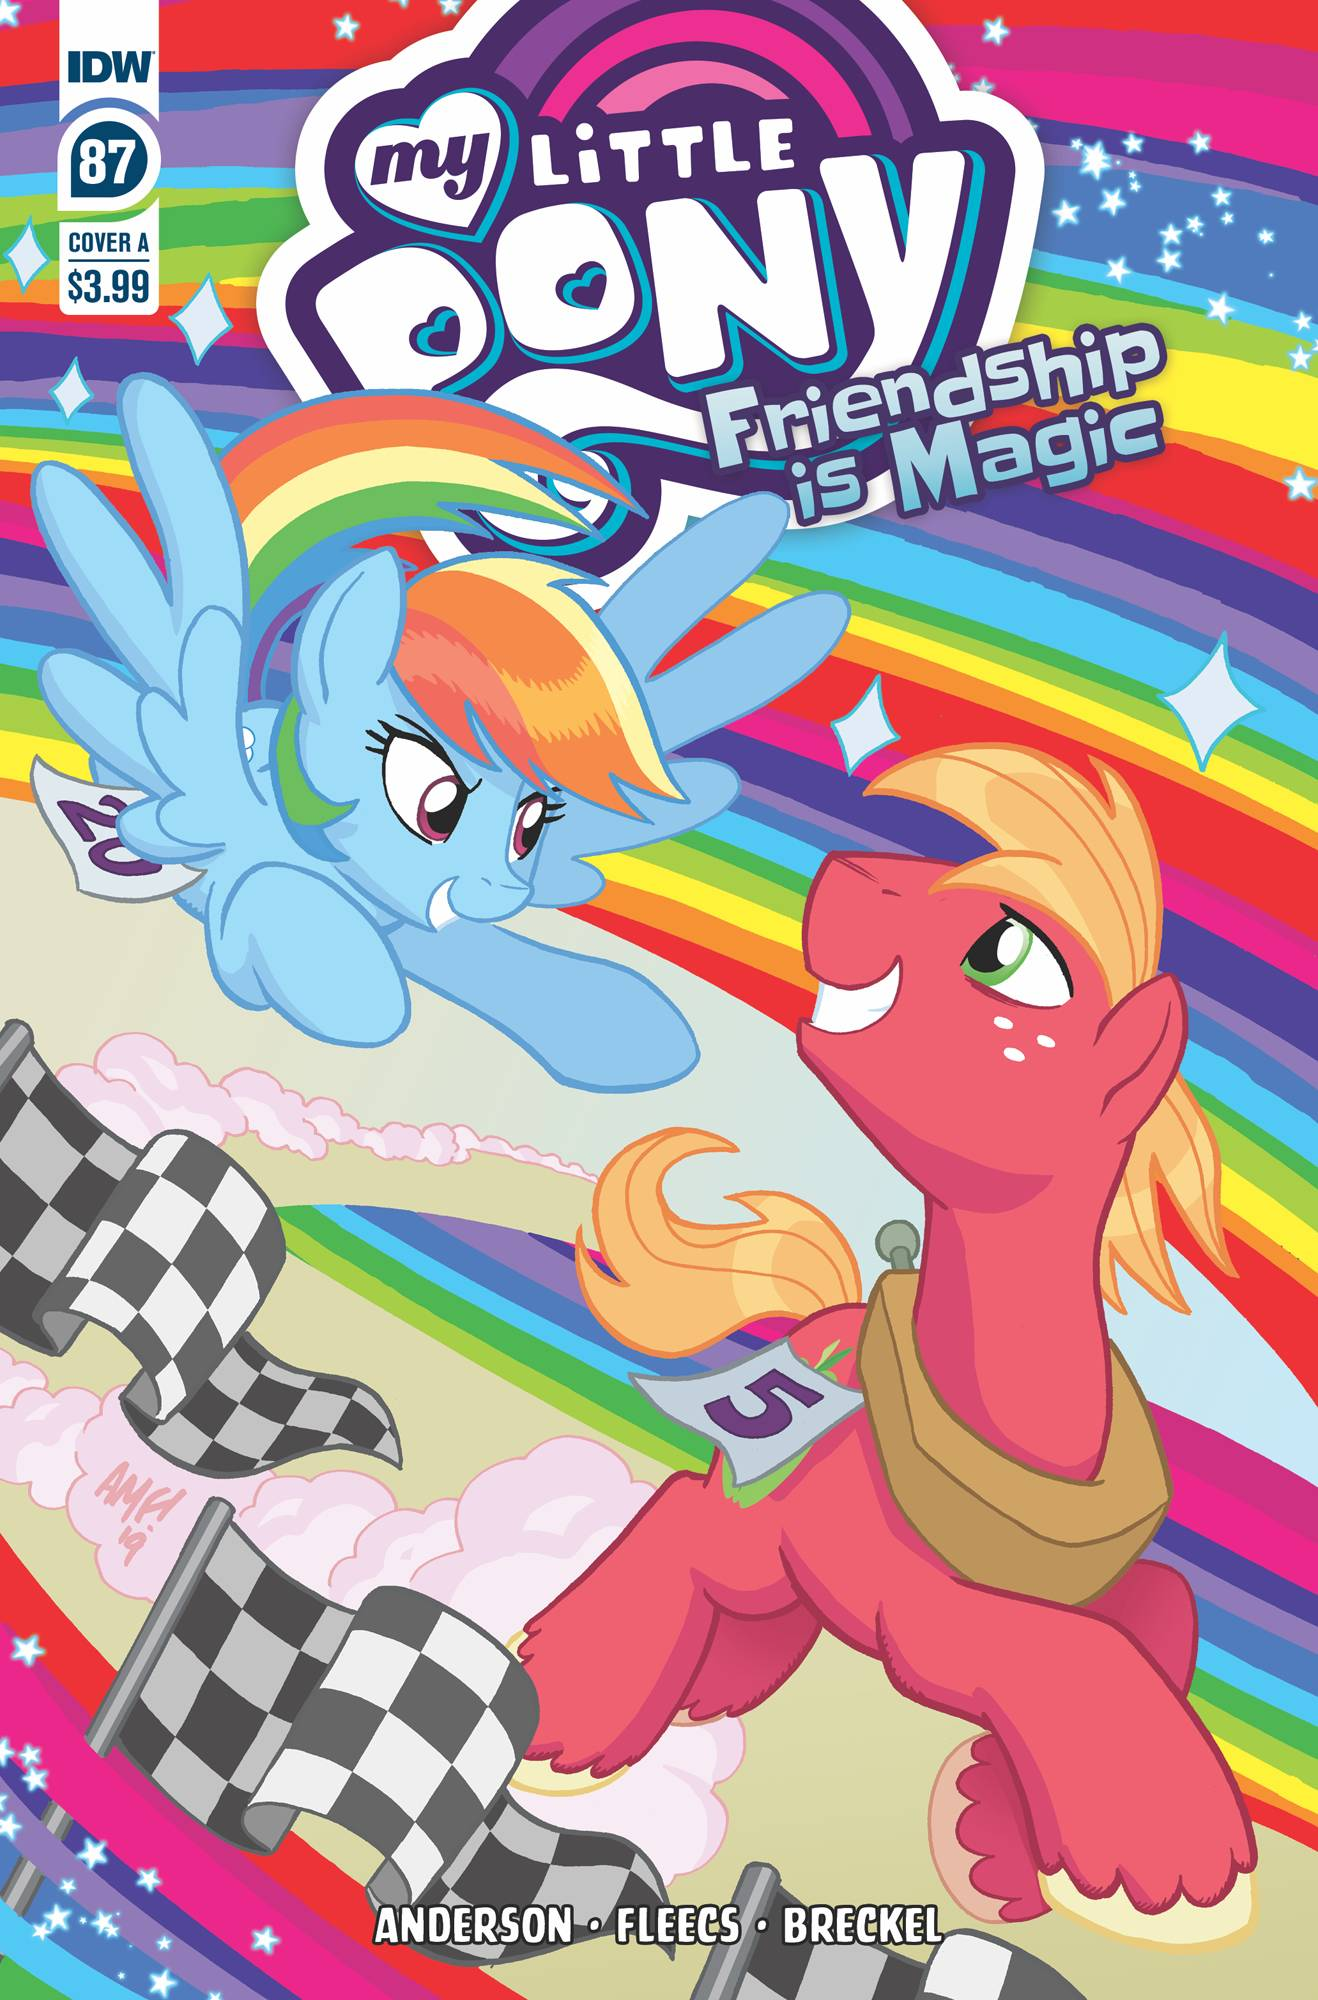 My Little Pony: Friendship Is Magic  #87 Cover A